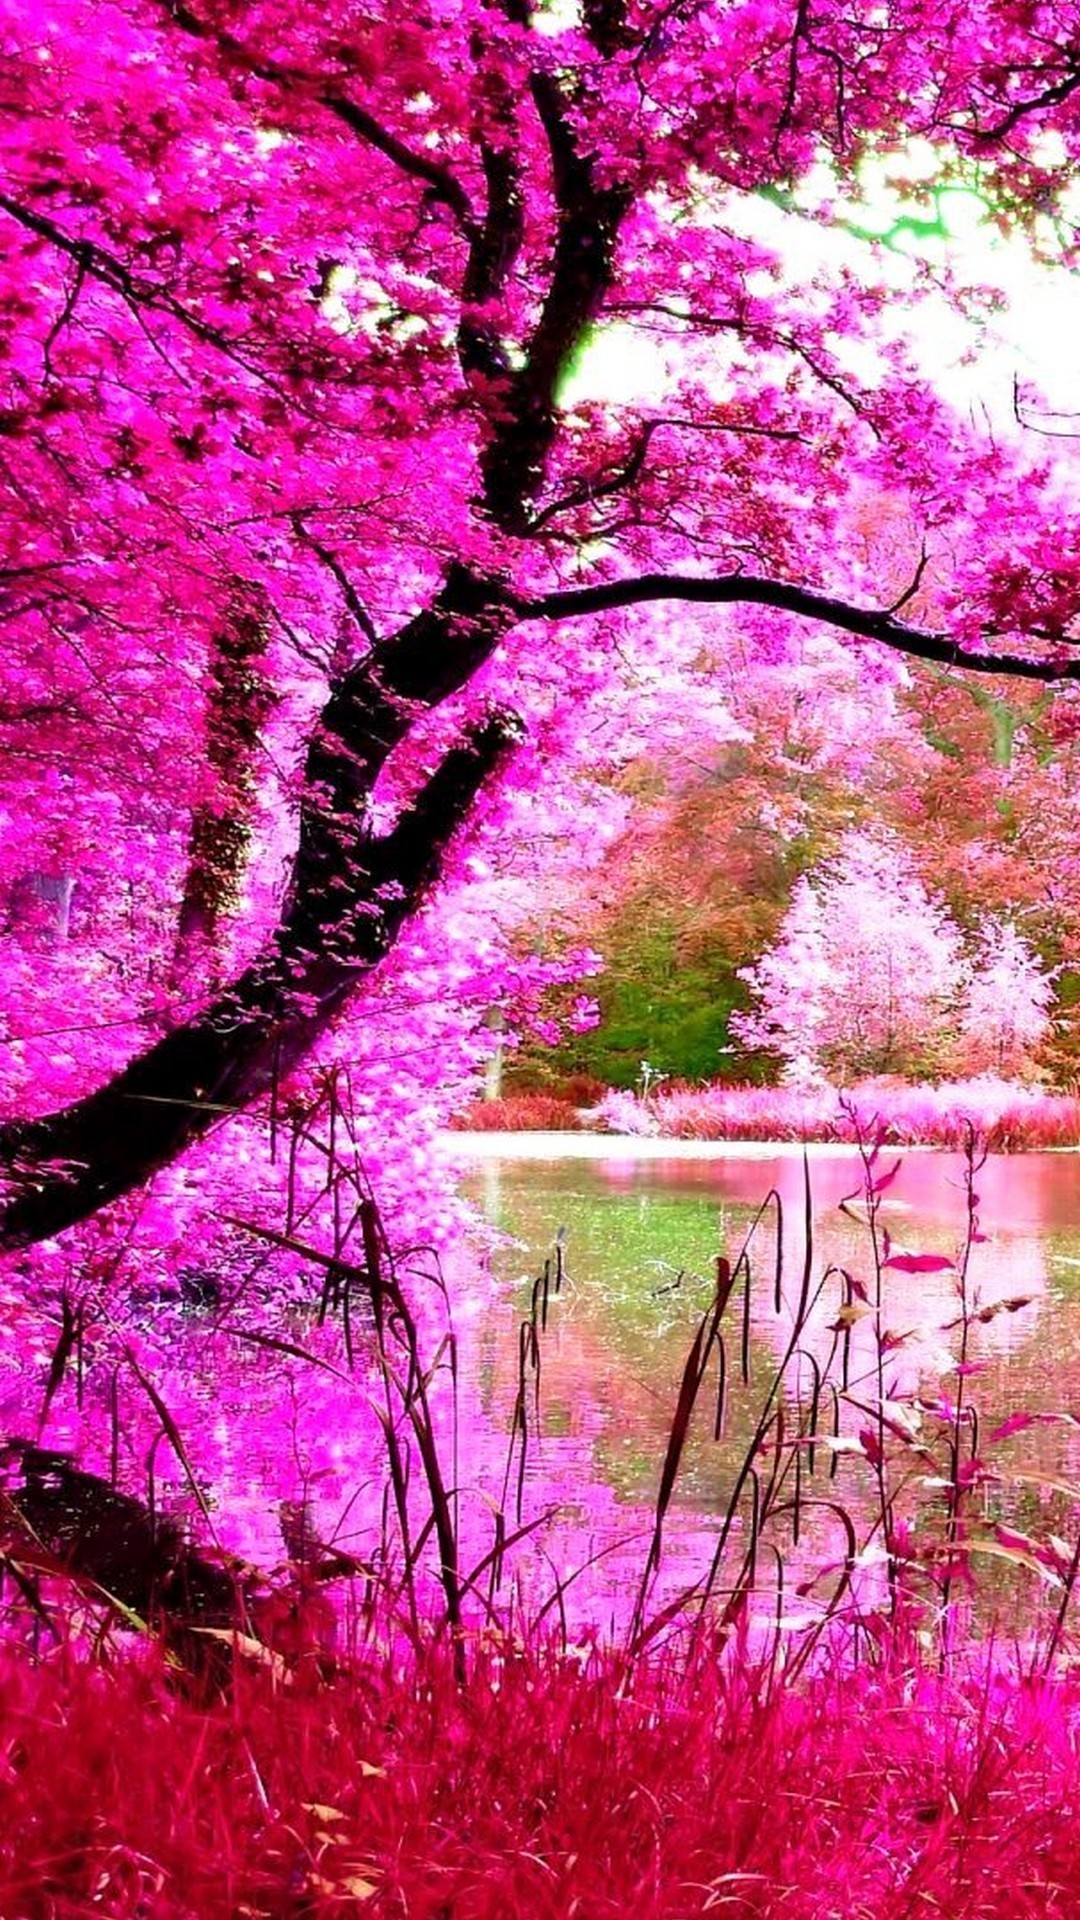 Beautiful Wallpapers Of Nature For Mobile: Pink Nature Wallpaper (53+ Images